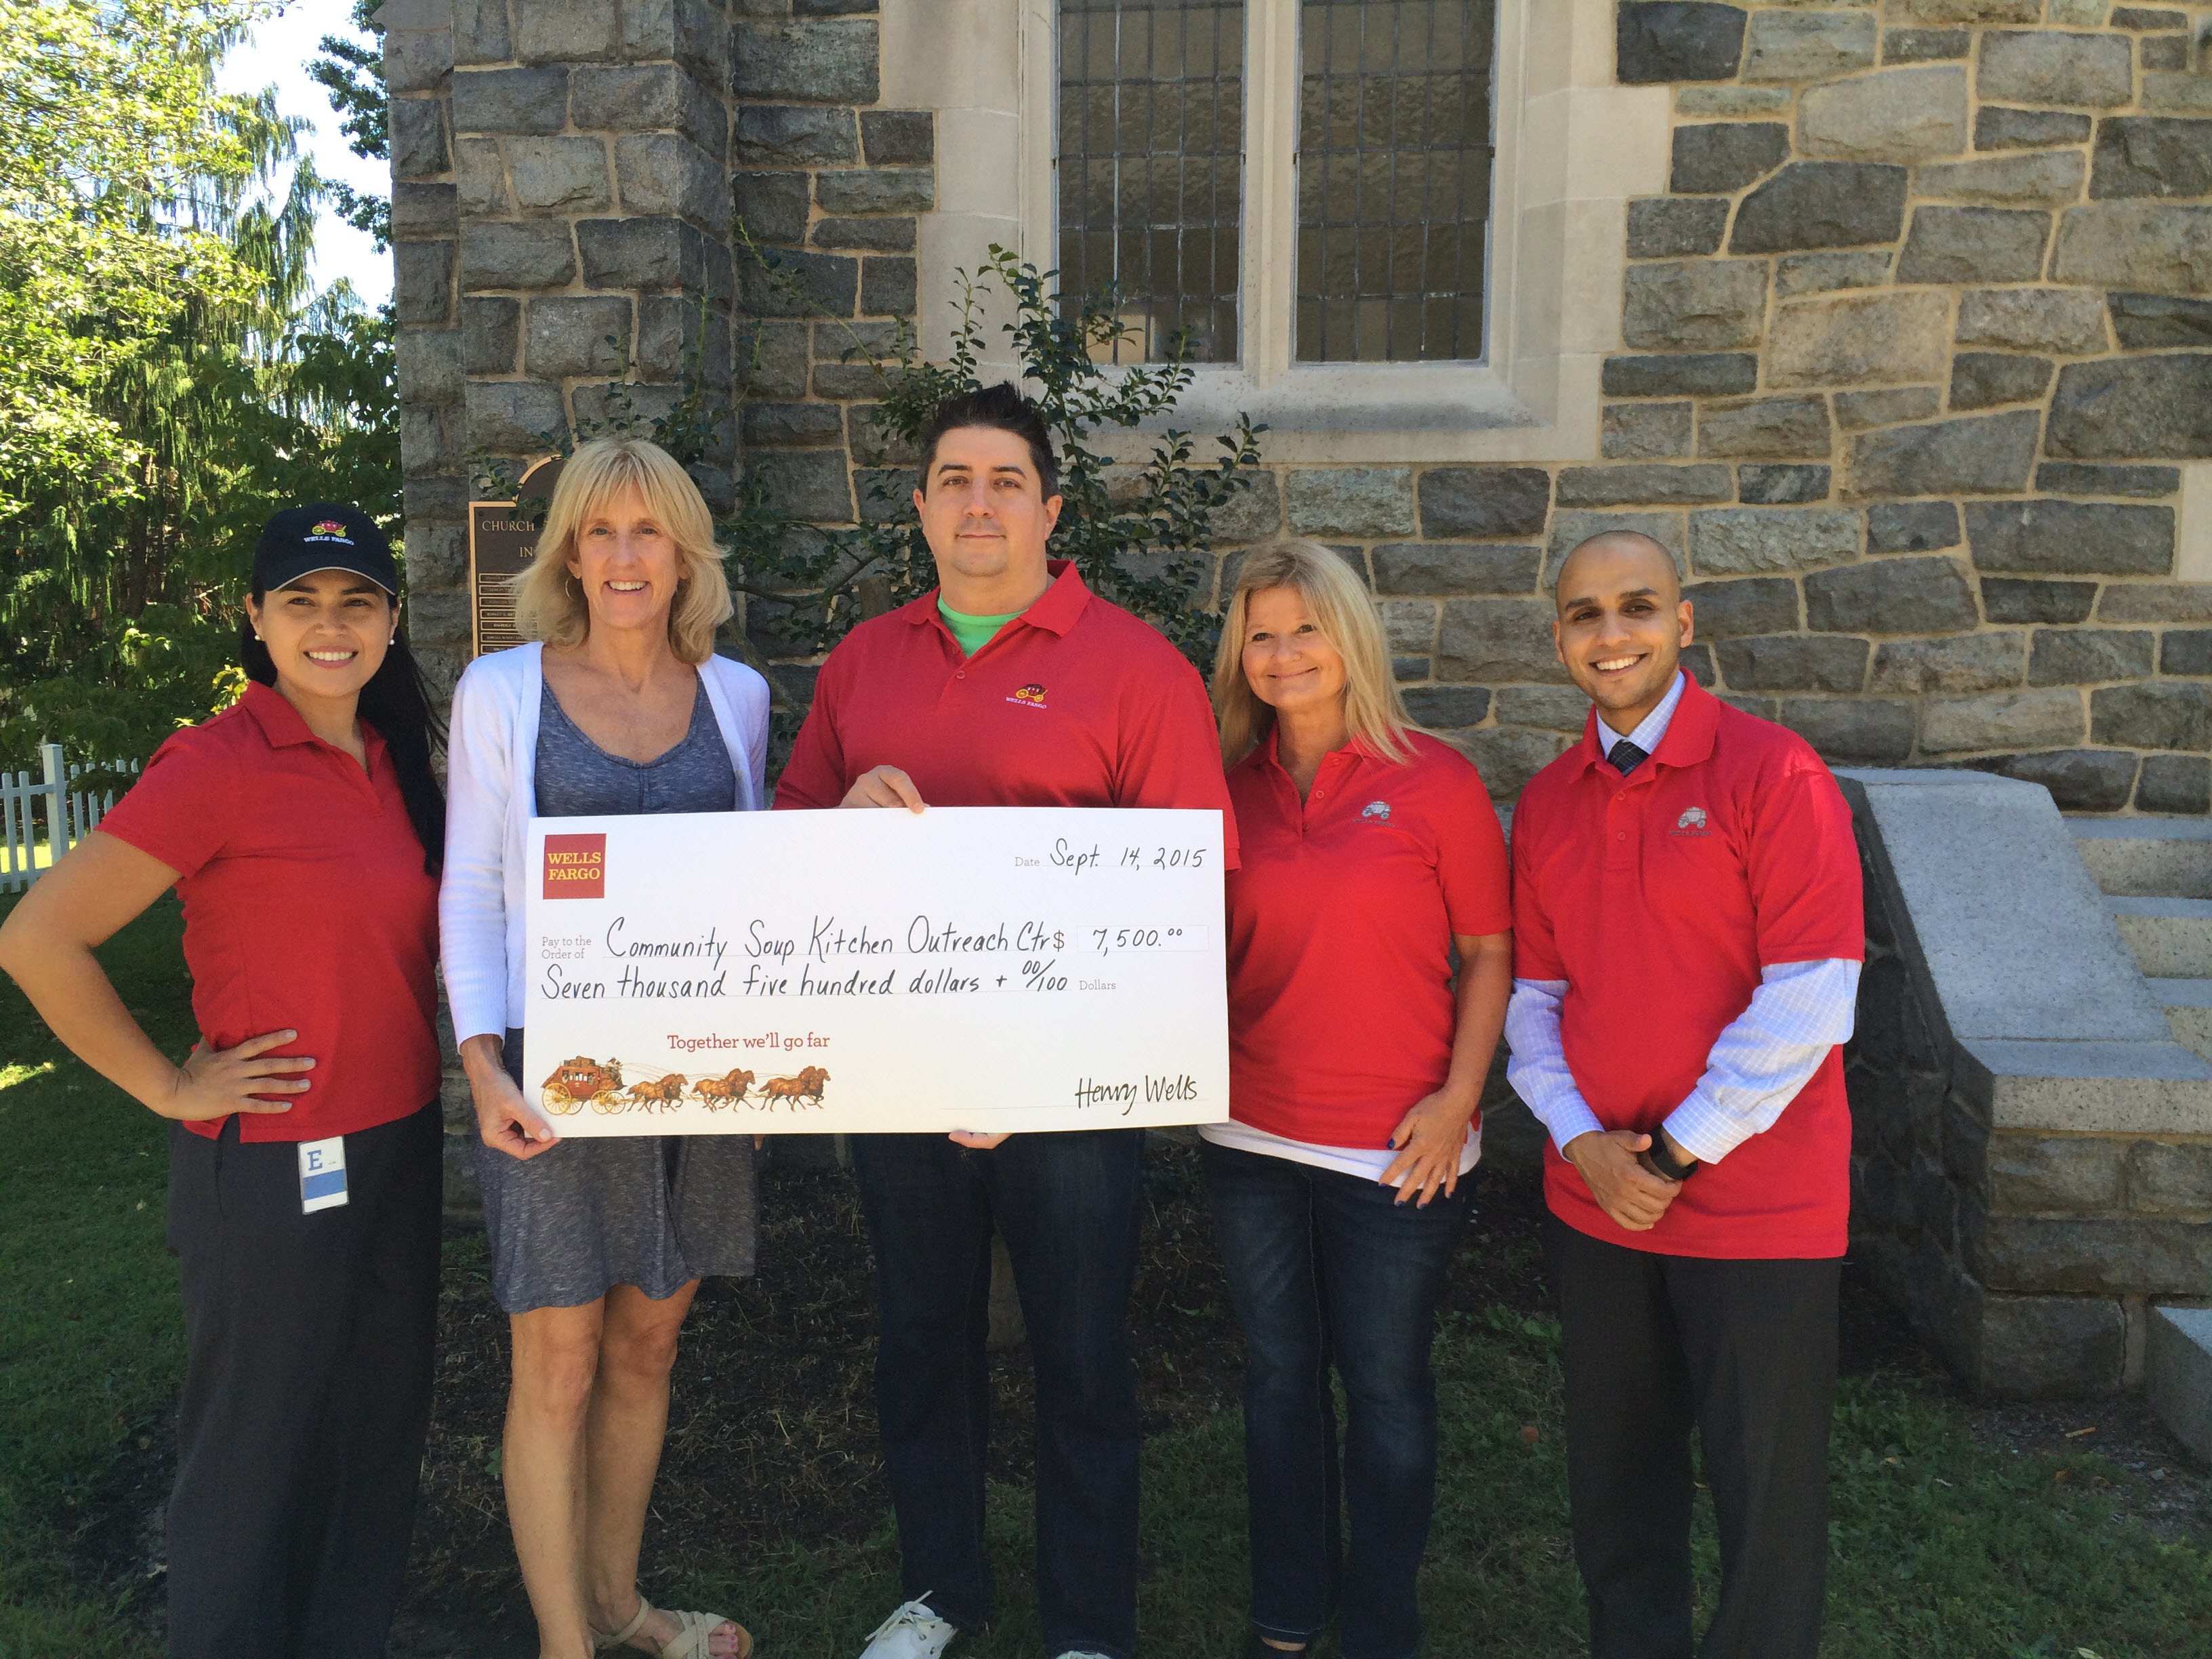 munity soup kitchen awarded 7 500 by morristown area bank